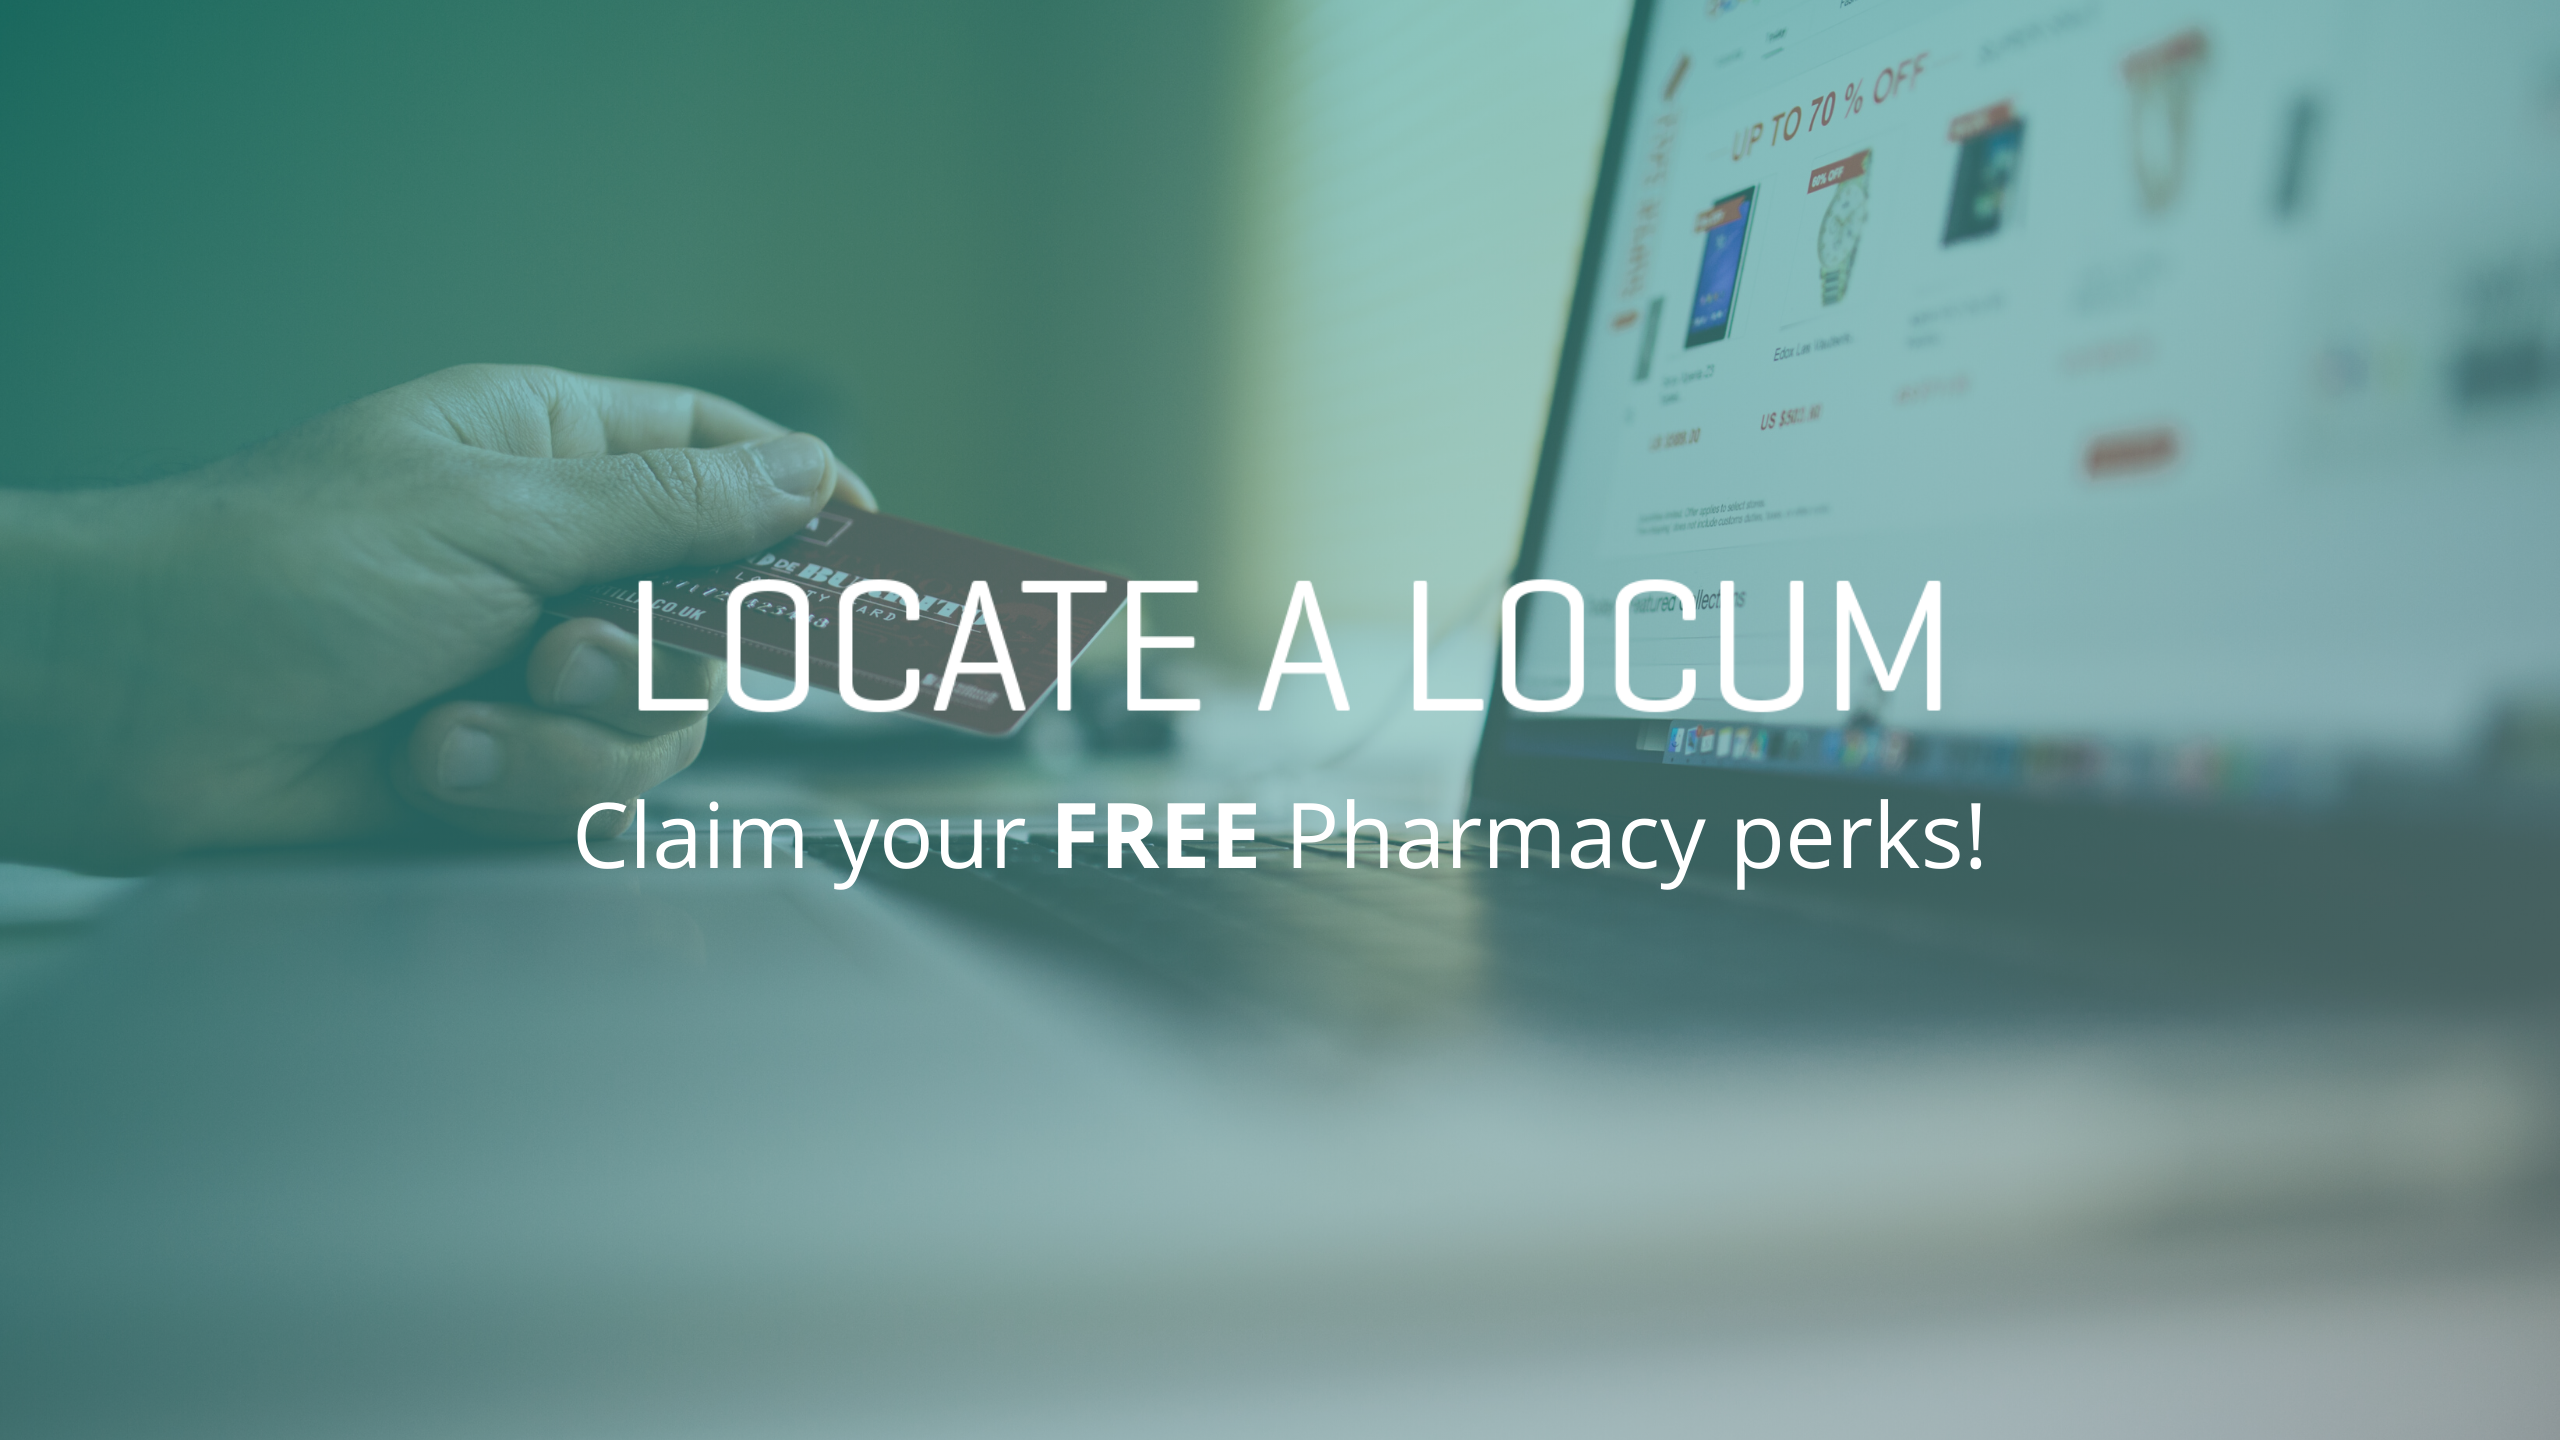 claim-your-free-pharmacy-perks